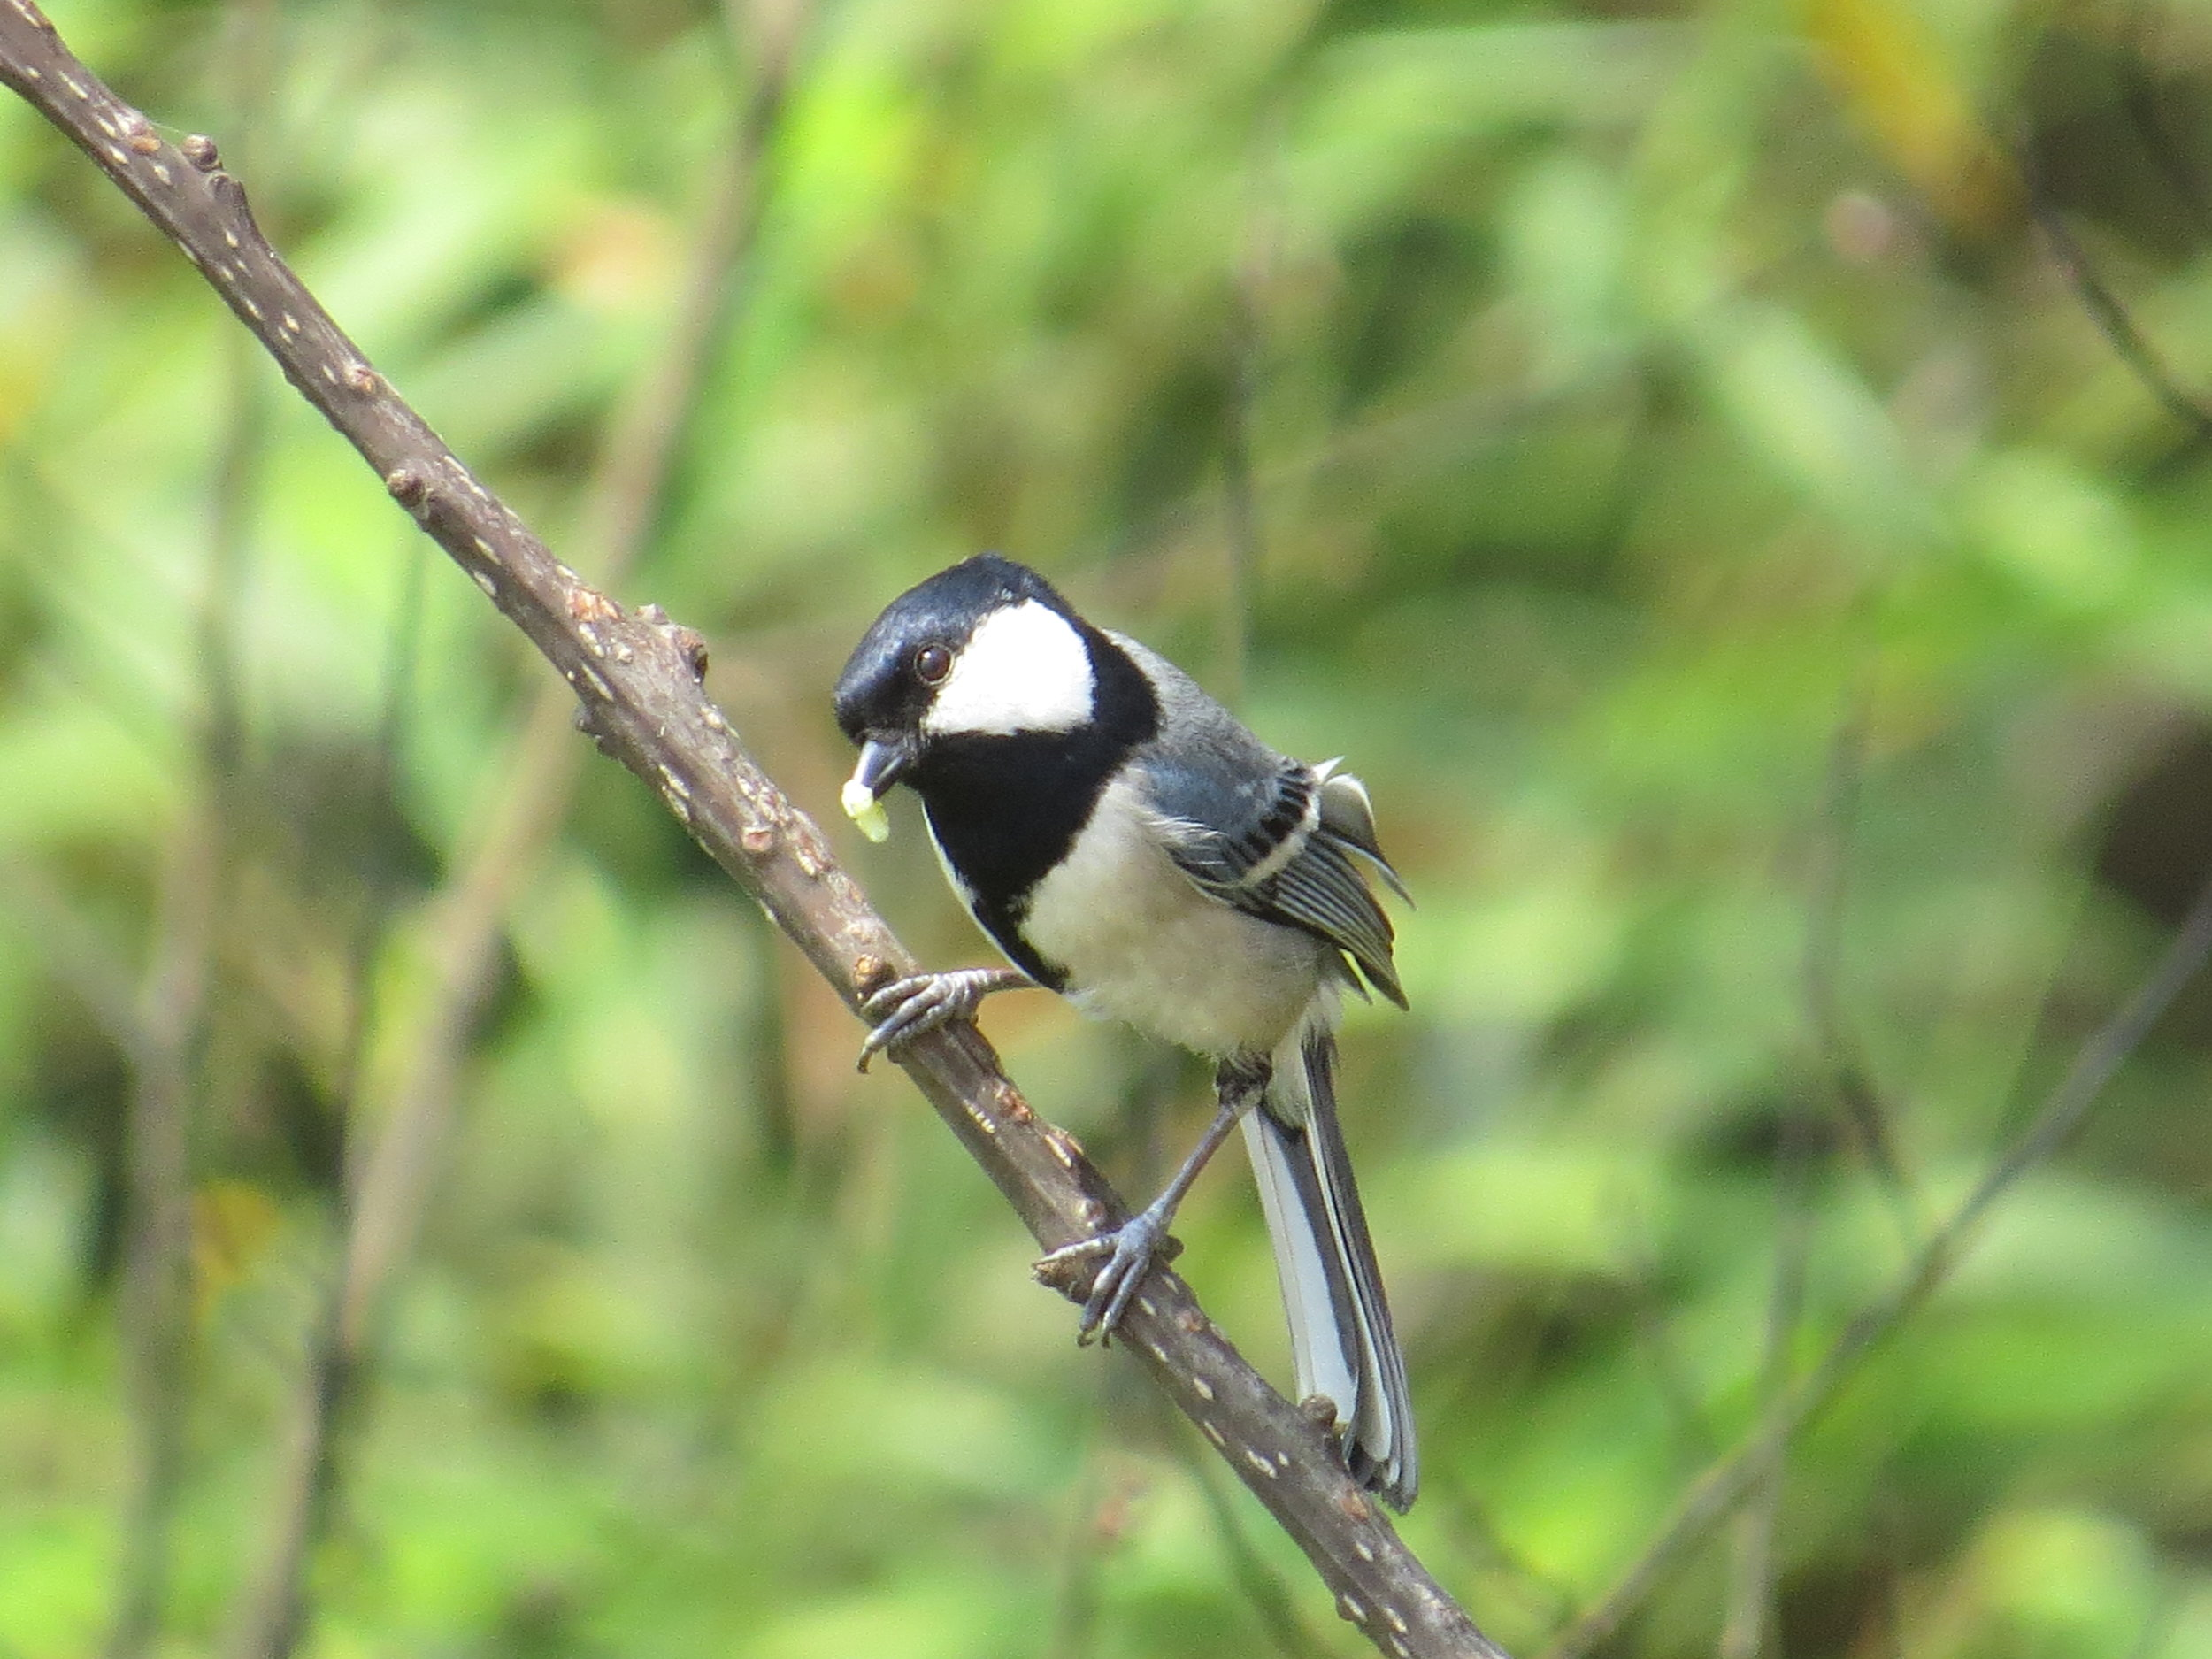 I think this is a Great Tit, taken from our hotel room balcony